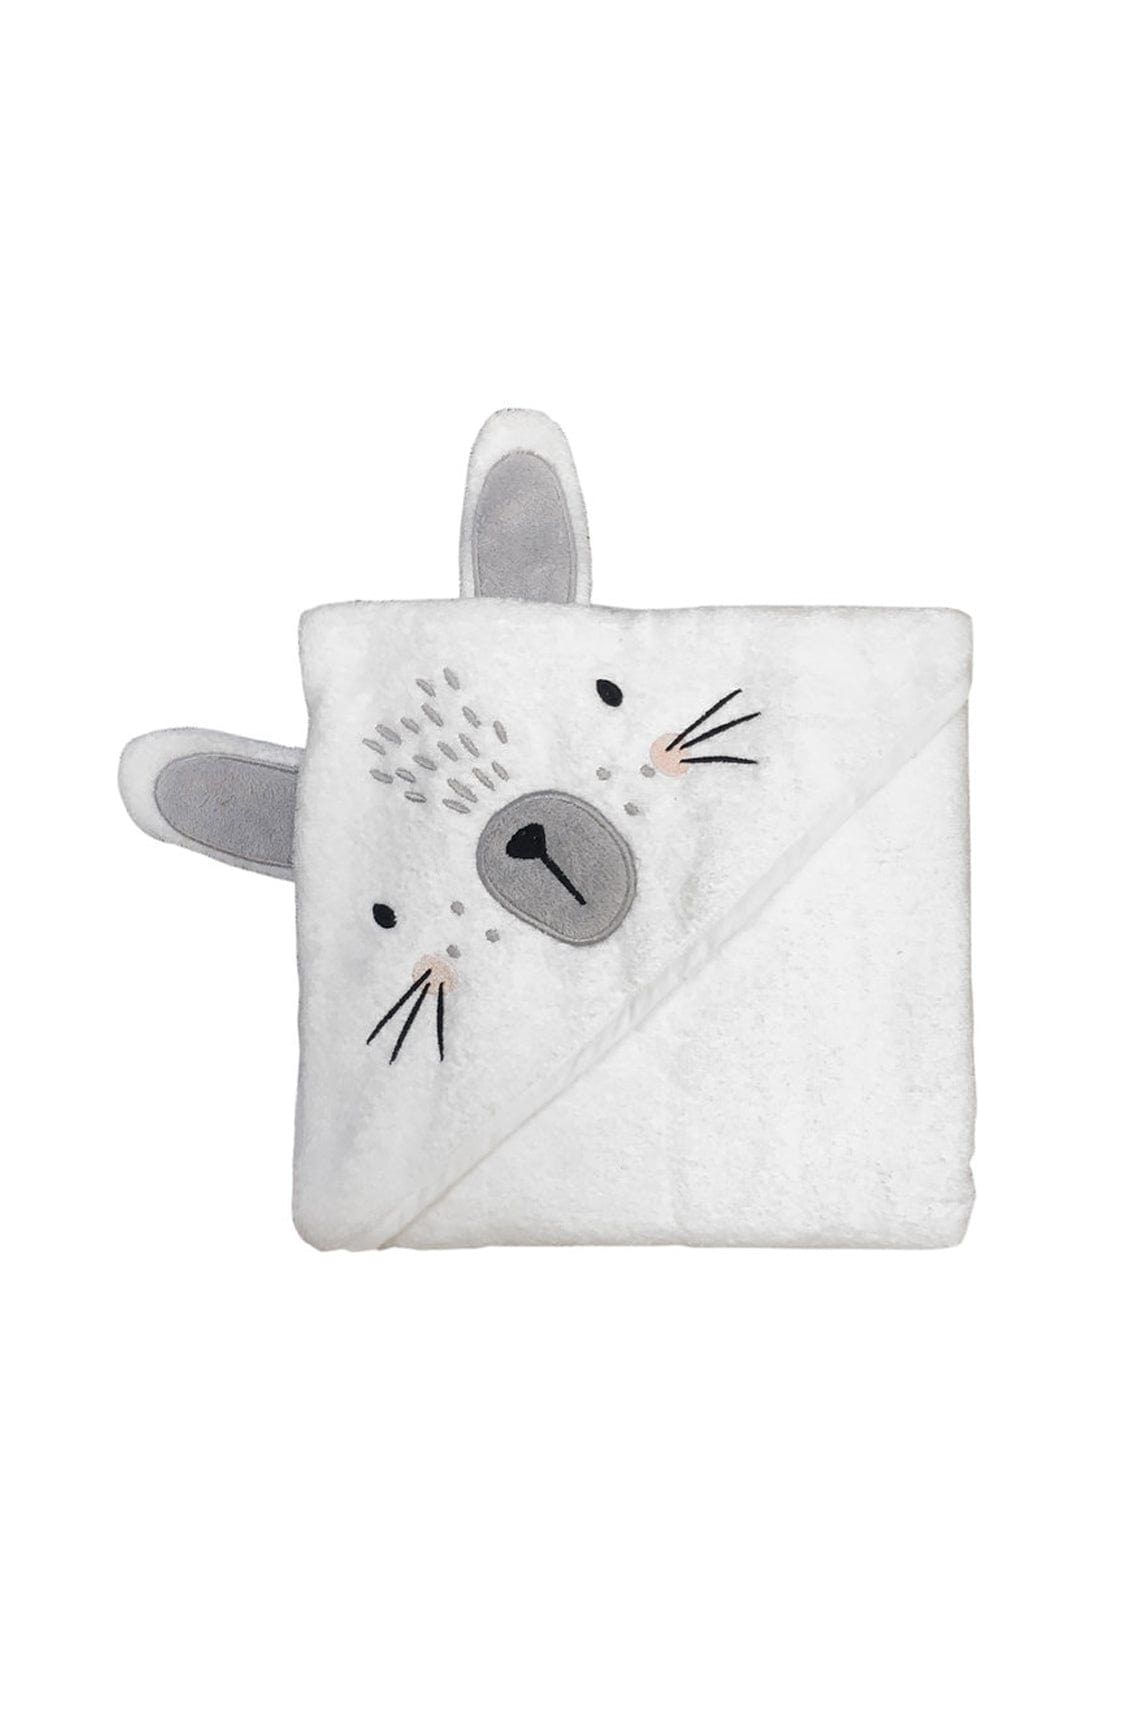 Mister Fly Bunny Hooded Towel - Hello Little Birdie